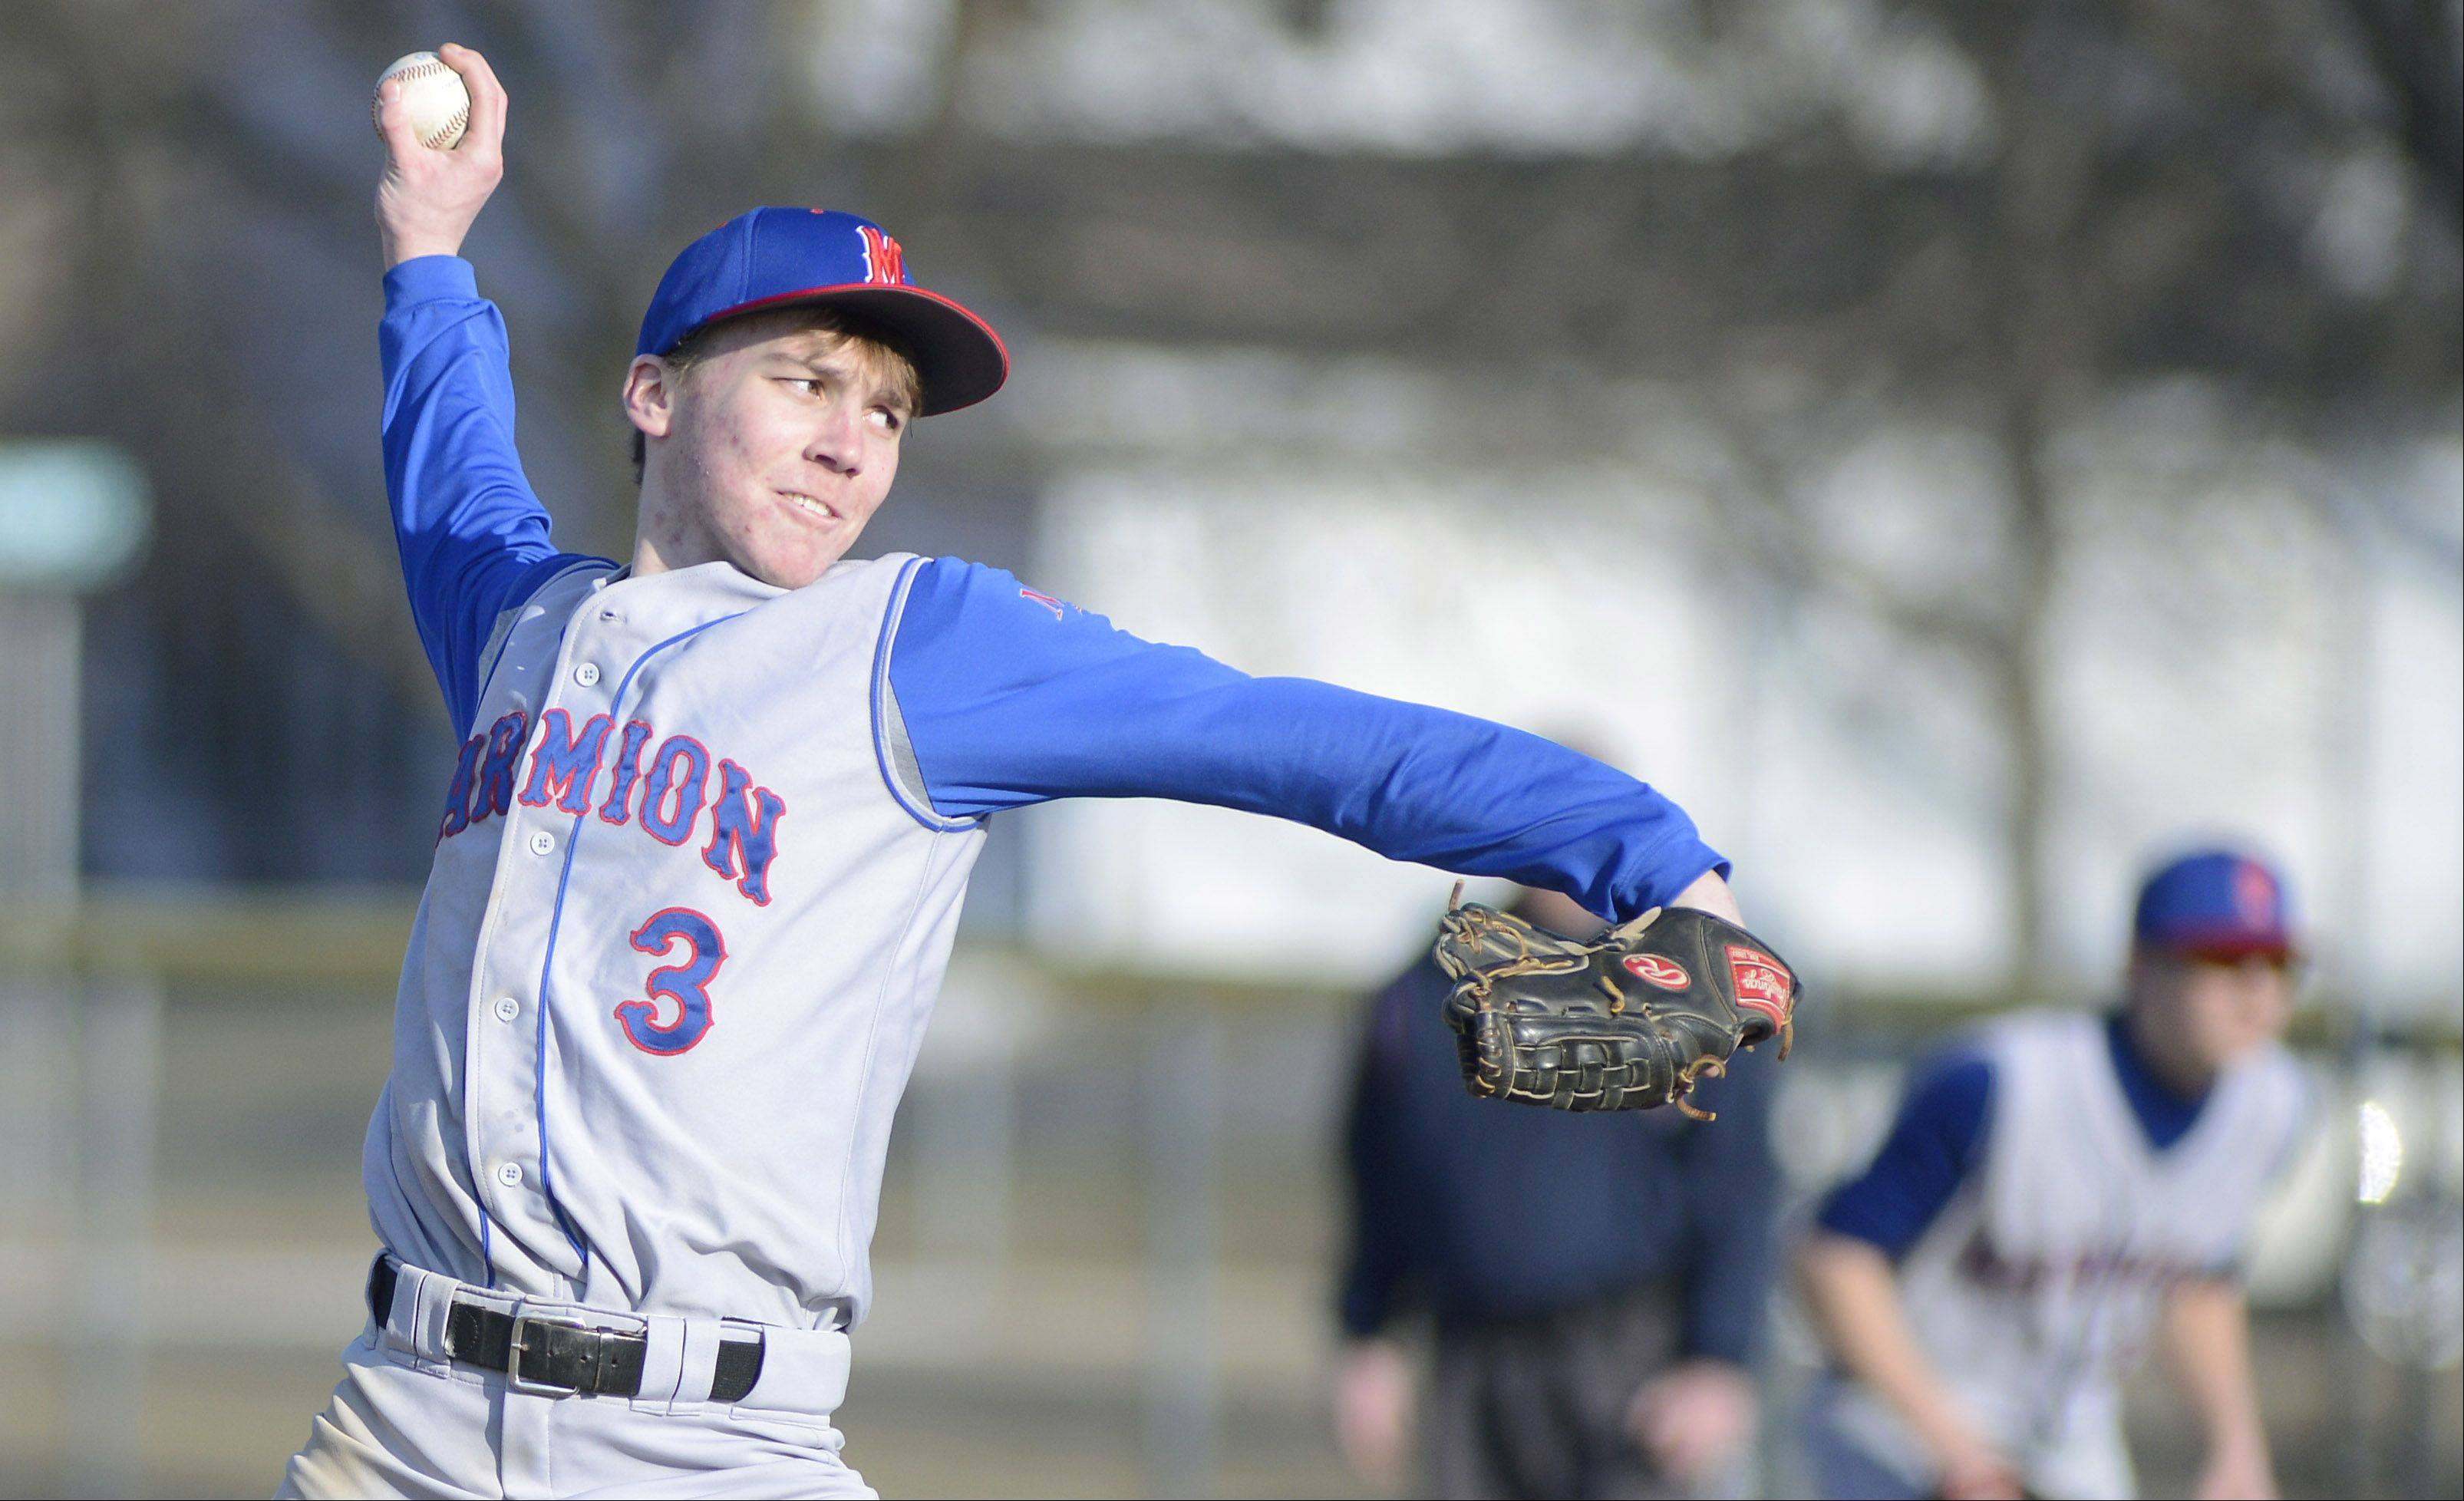 Marmion's AJ Bohr pitches in the fourth inning on Thursday, March 28.